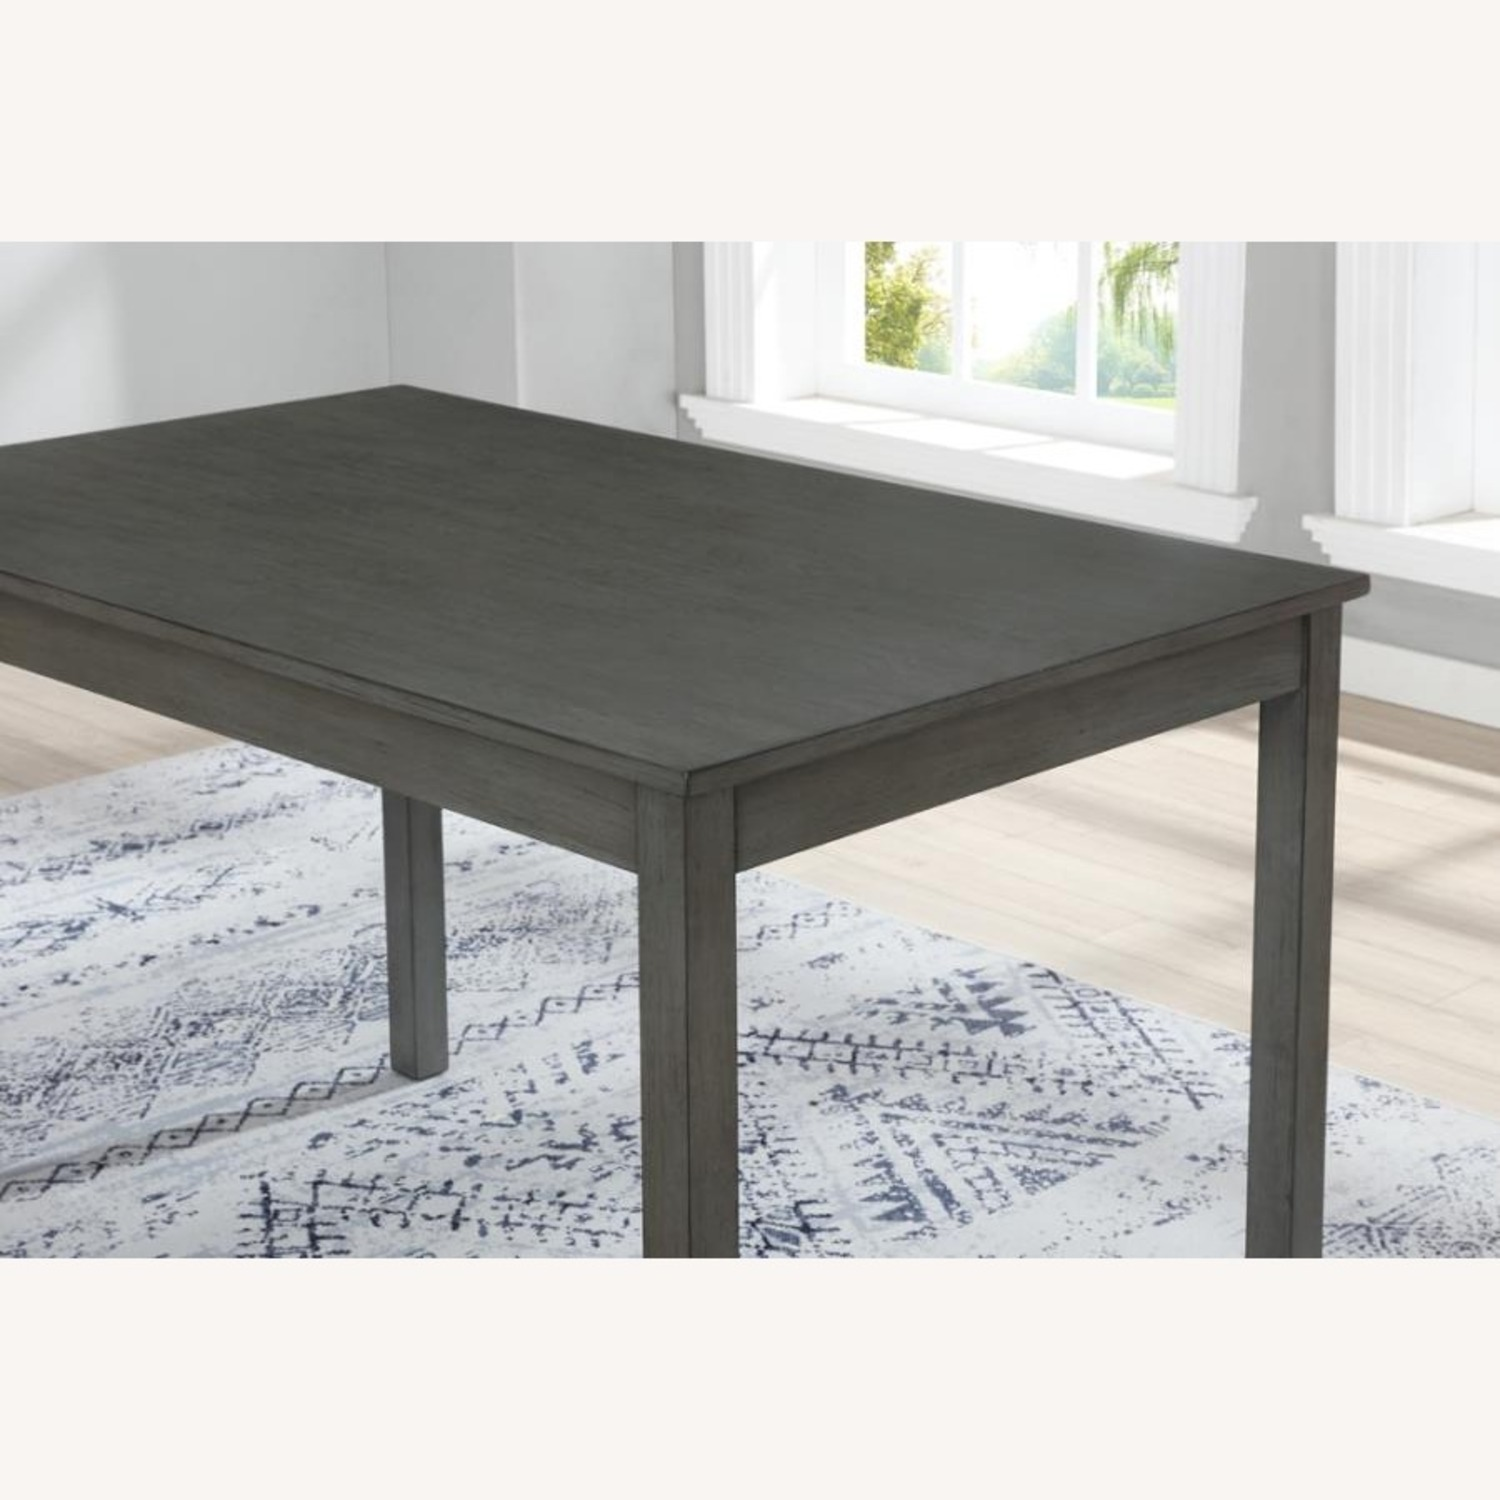 5-Piece Dining Set In Grey Wood & Fabric Finish - image-2